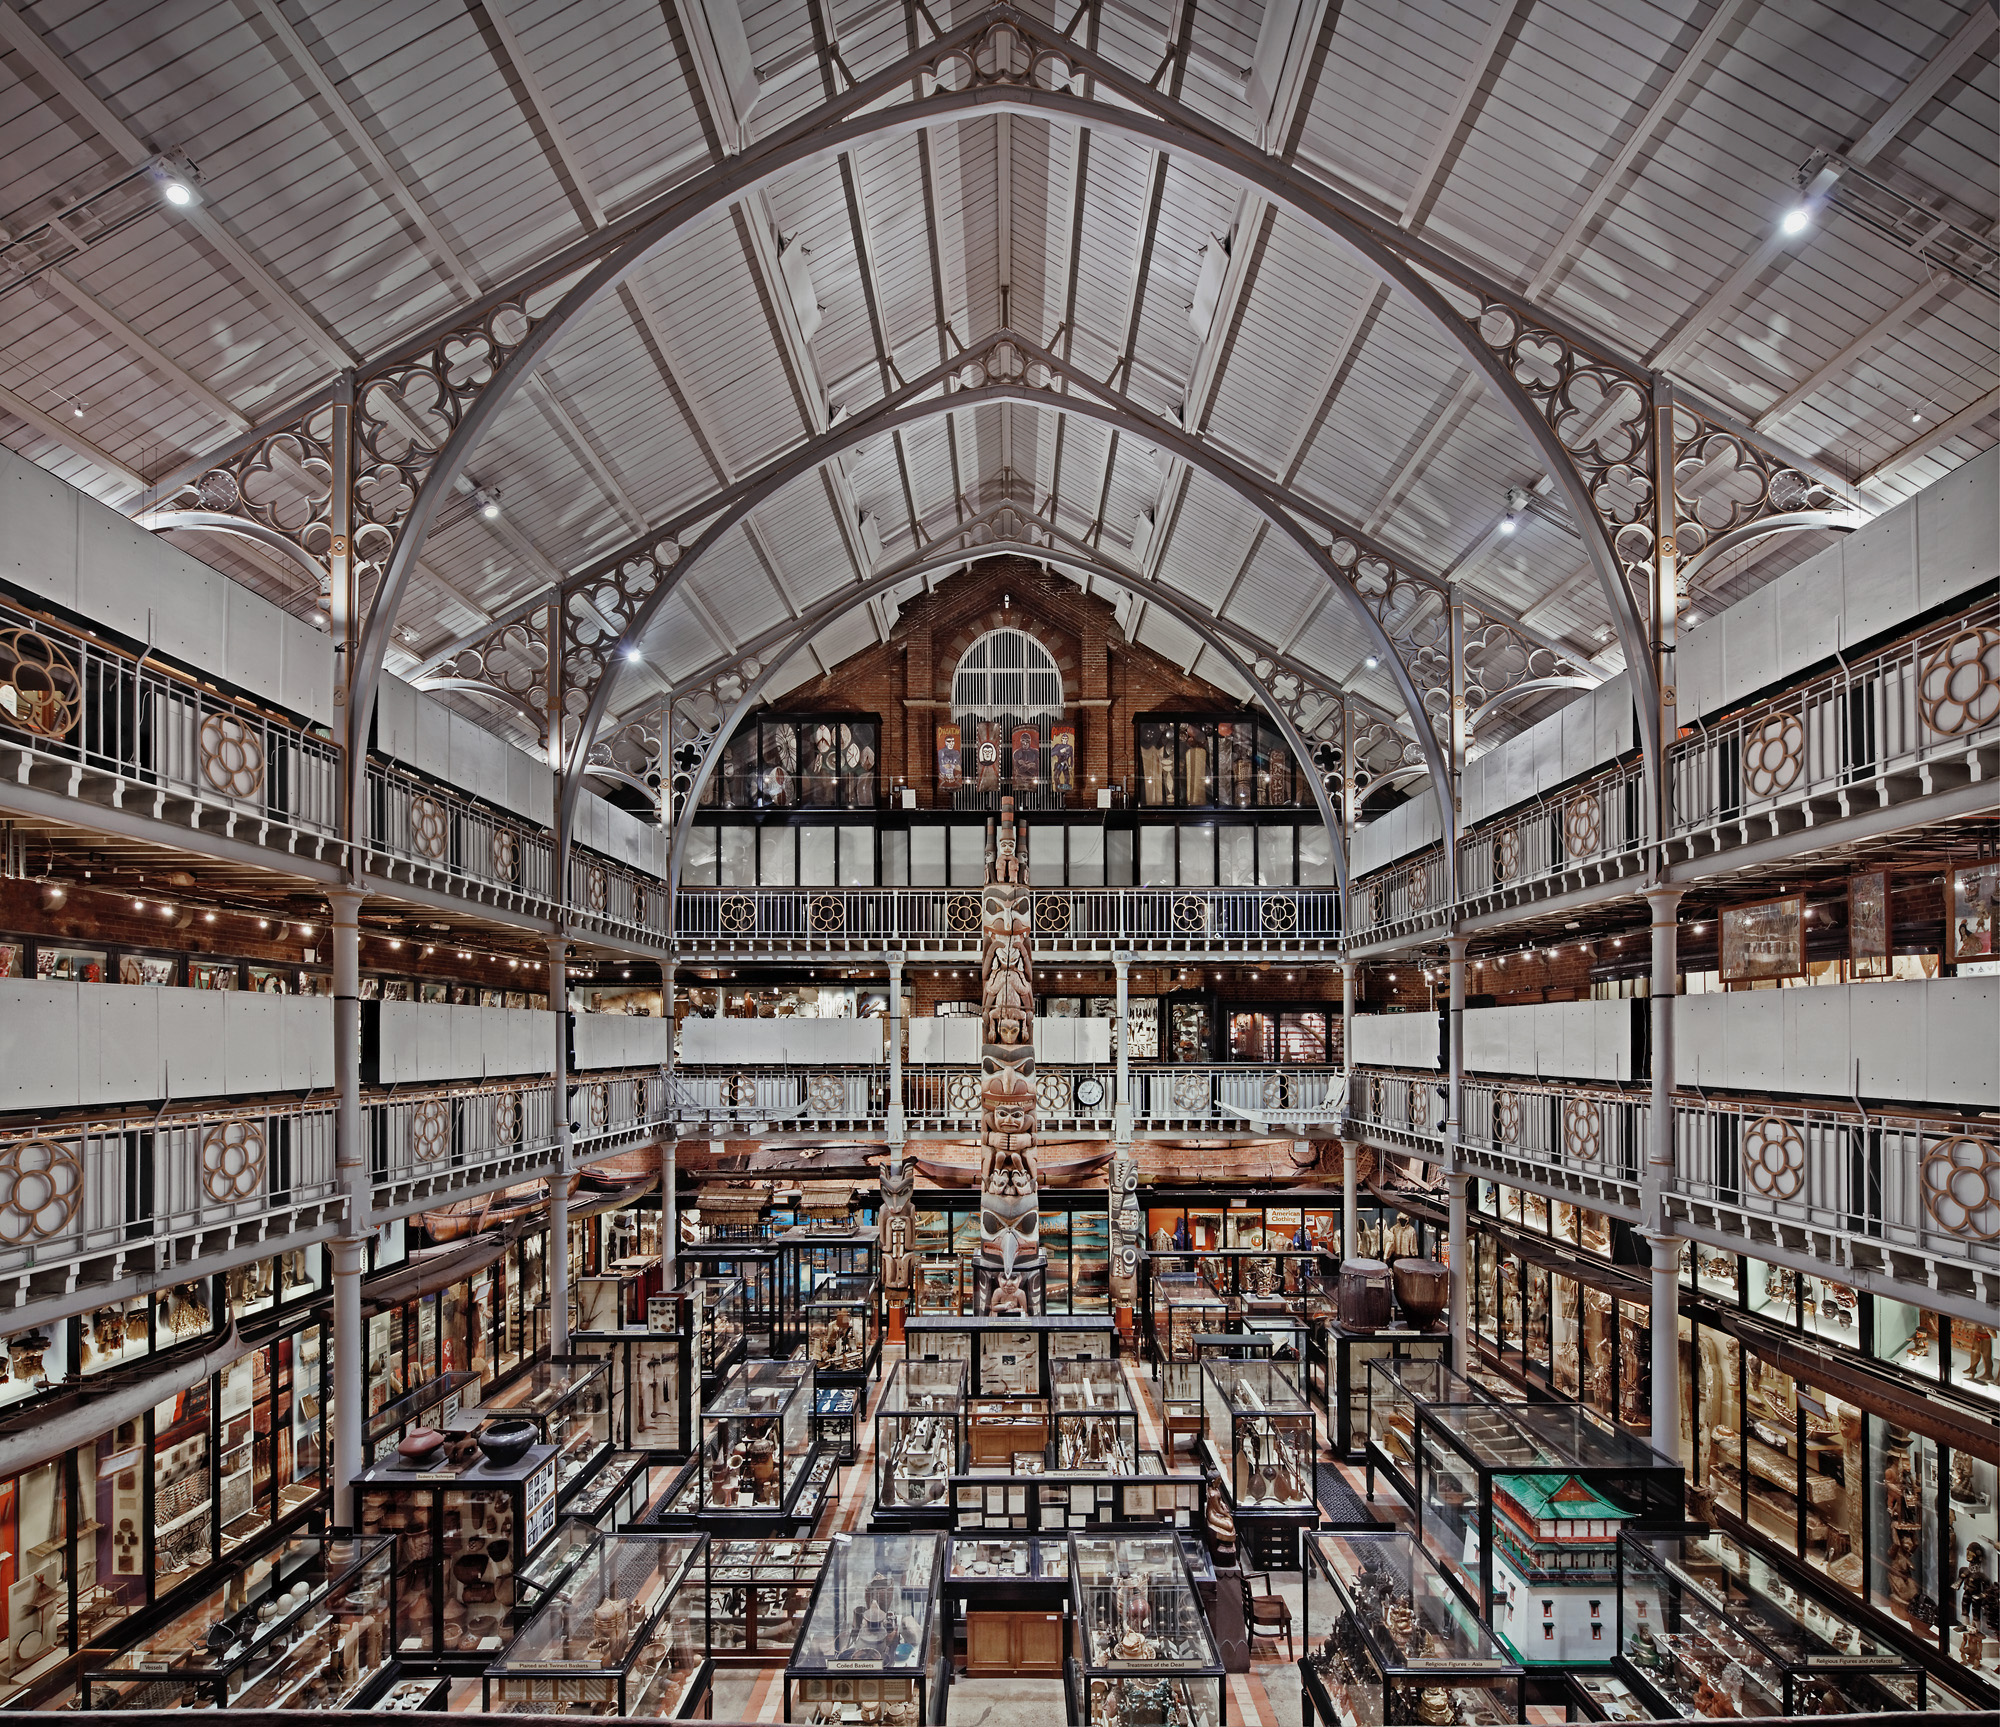 Pitt Rivers Museum, Oxford, UK